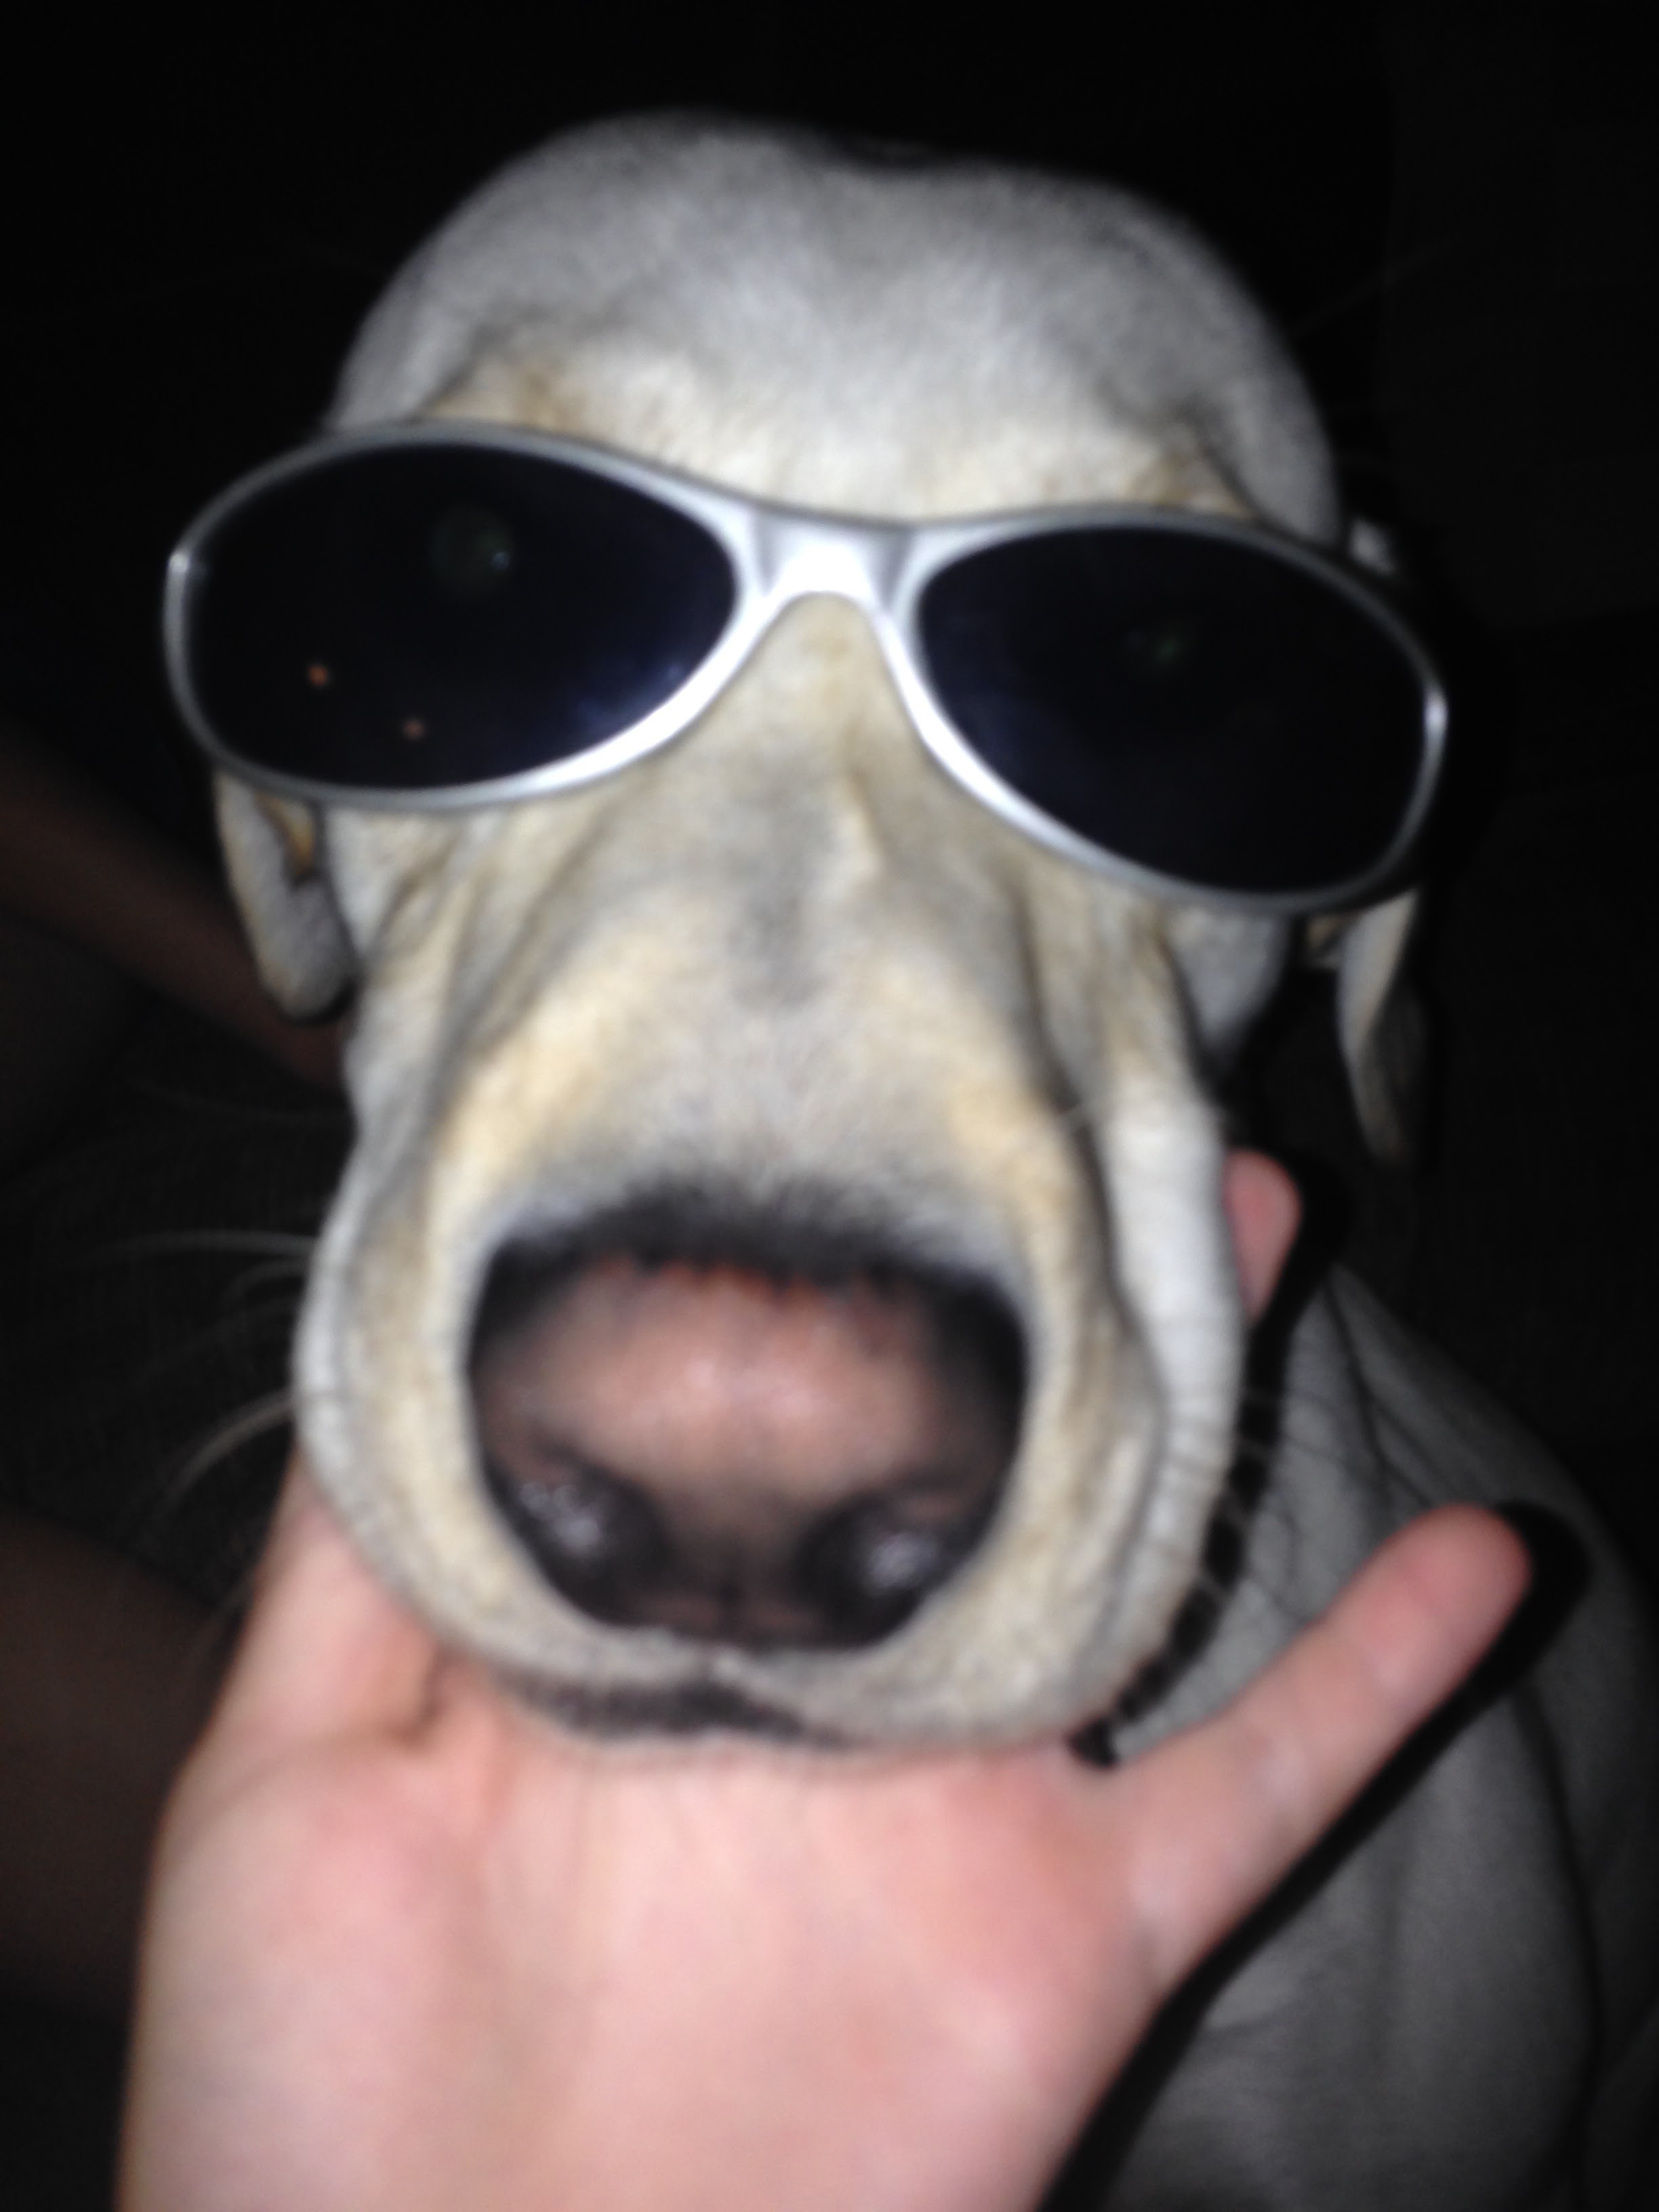 Willy-Dog-with-Sunglasses.jpg